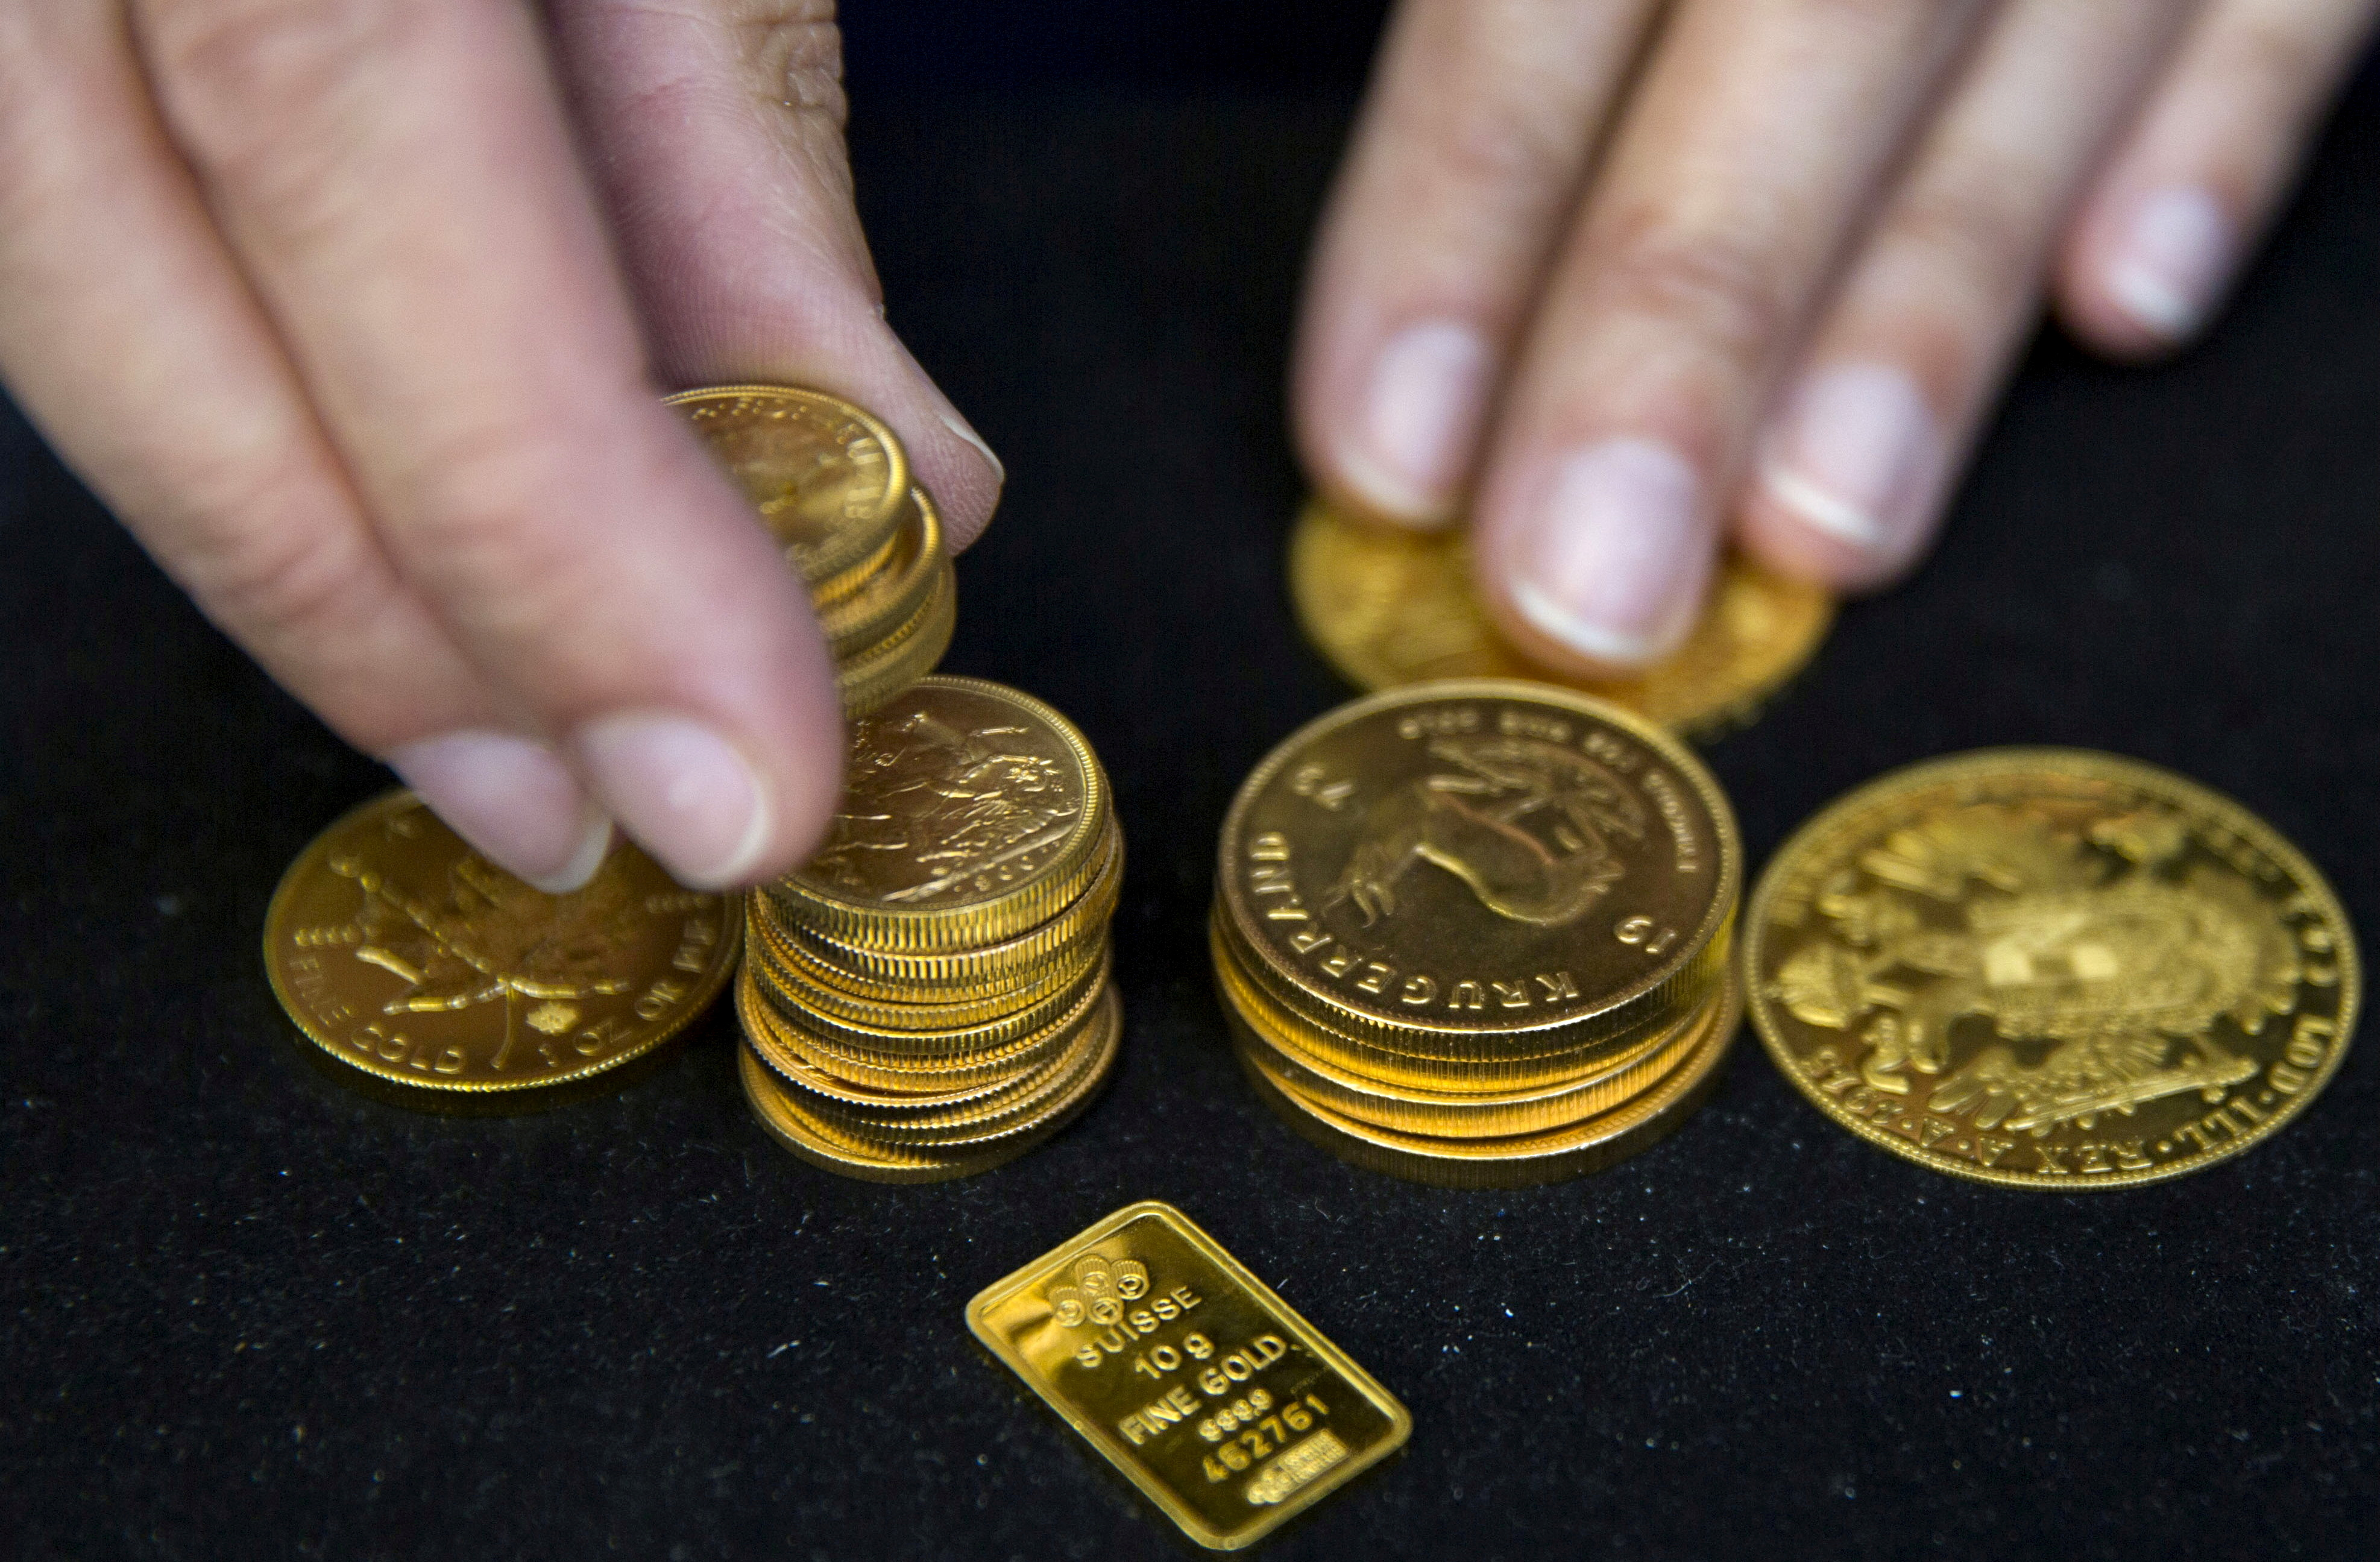 A worker places gold bullion on display at Hatton Garden Metals precious metal dealers in London, Britain July 21, 2015. REUTERS/Neil Hall/File Photo